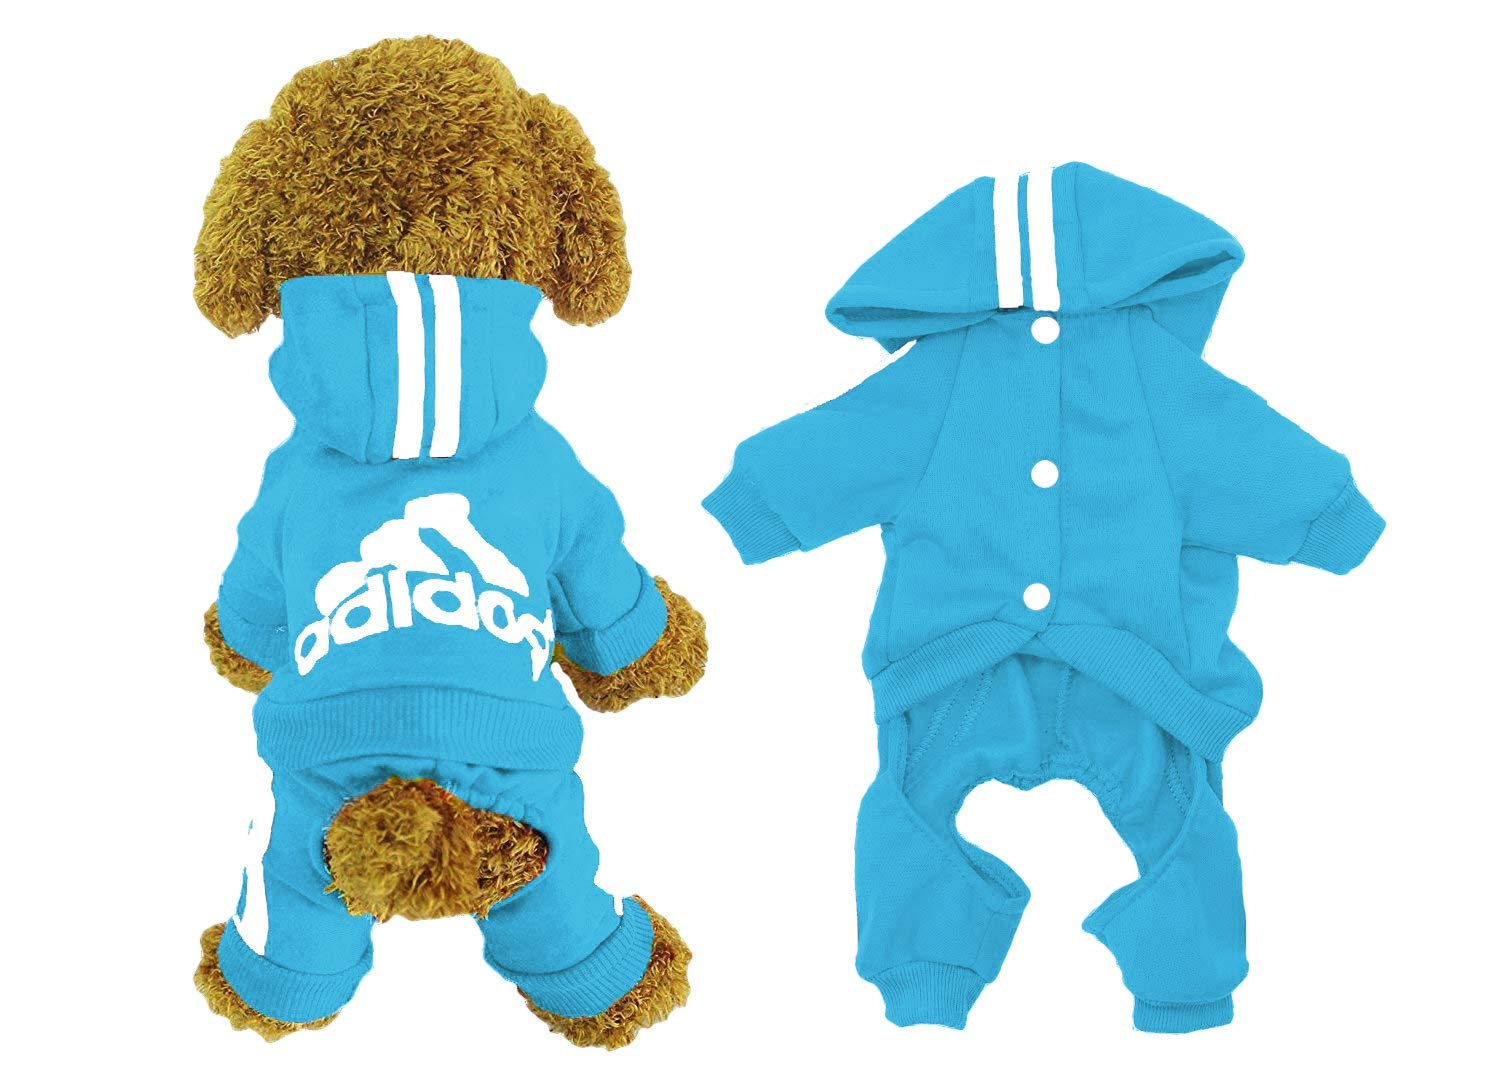 ADIDOG Dog Jacket with Hoodie and Four-Legged Design Made with Breathable Cotton Material 1